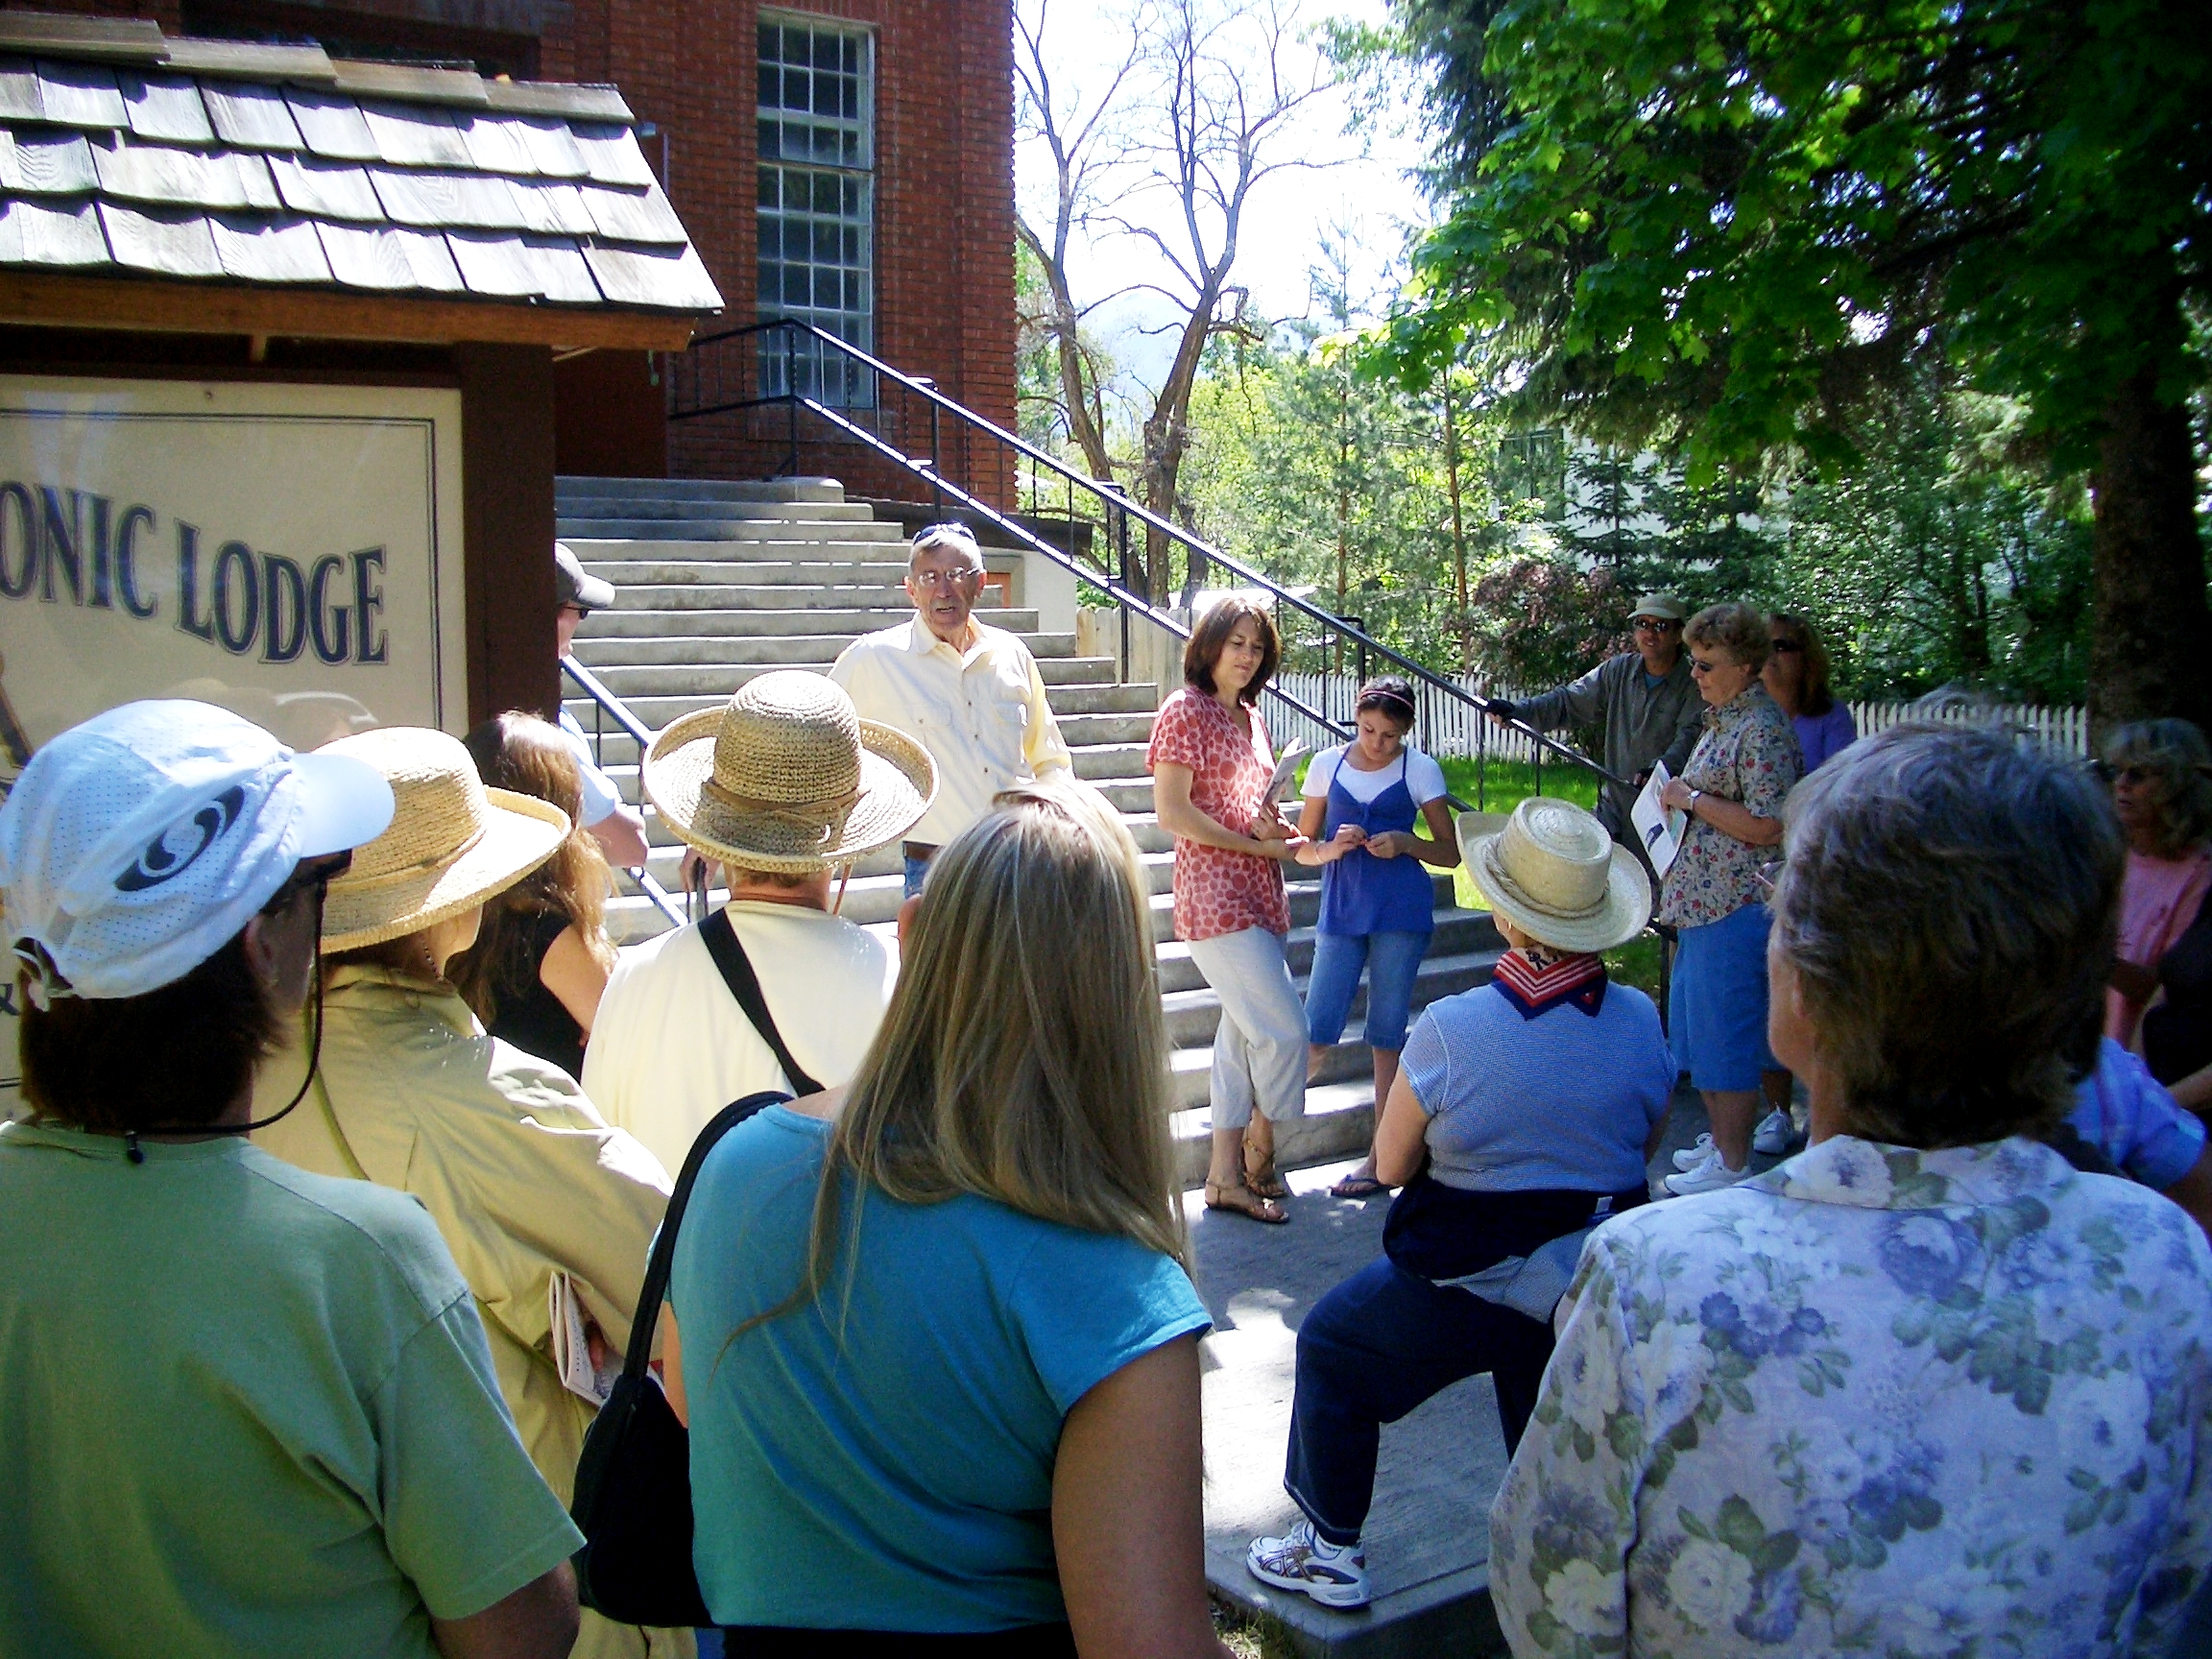 A walking tour group learns about the Masonic Lodge building in Hailey, Idaho